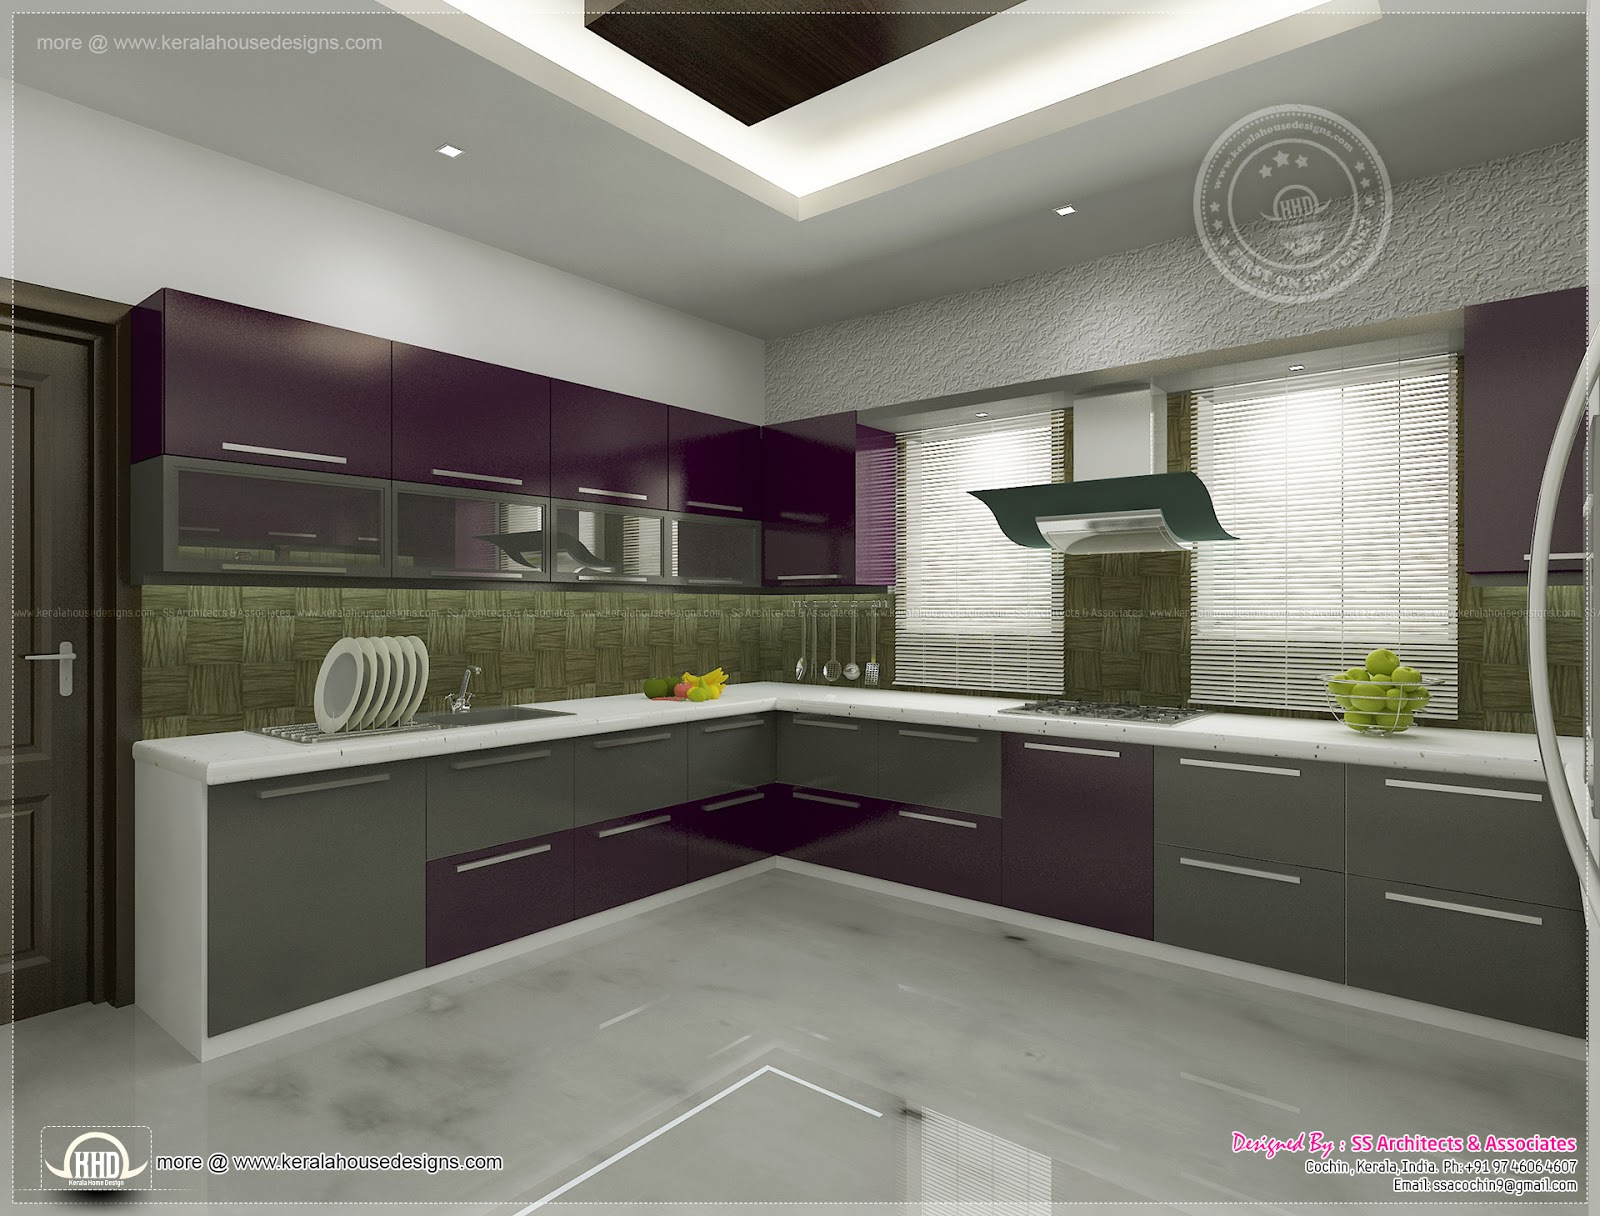 Kitchen interior views by ss architects cochin kerala home design and floor plans - Doing home interior design online ...